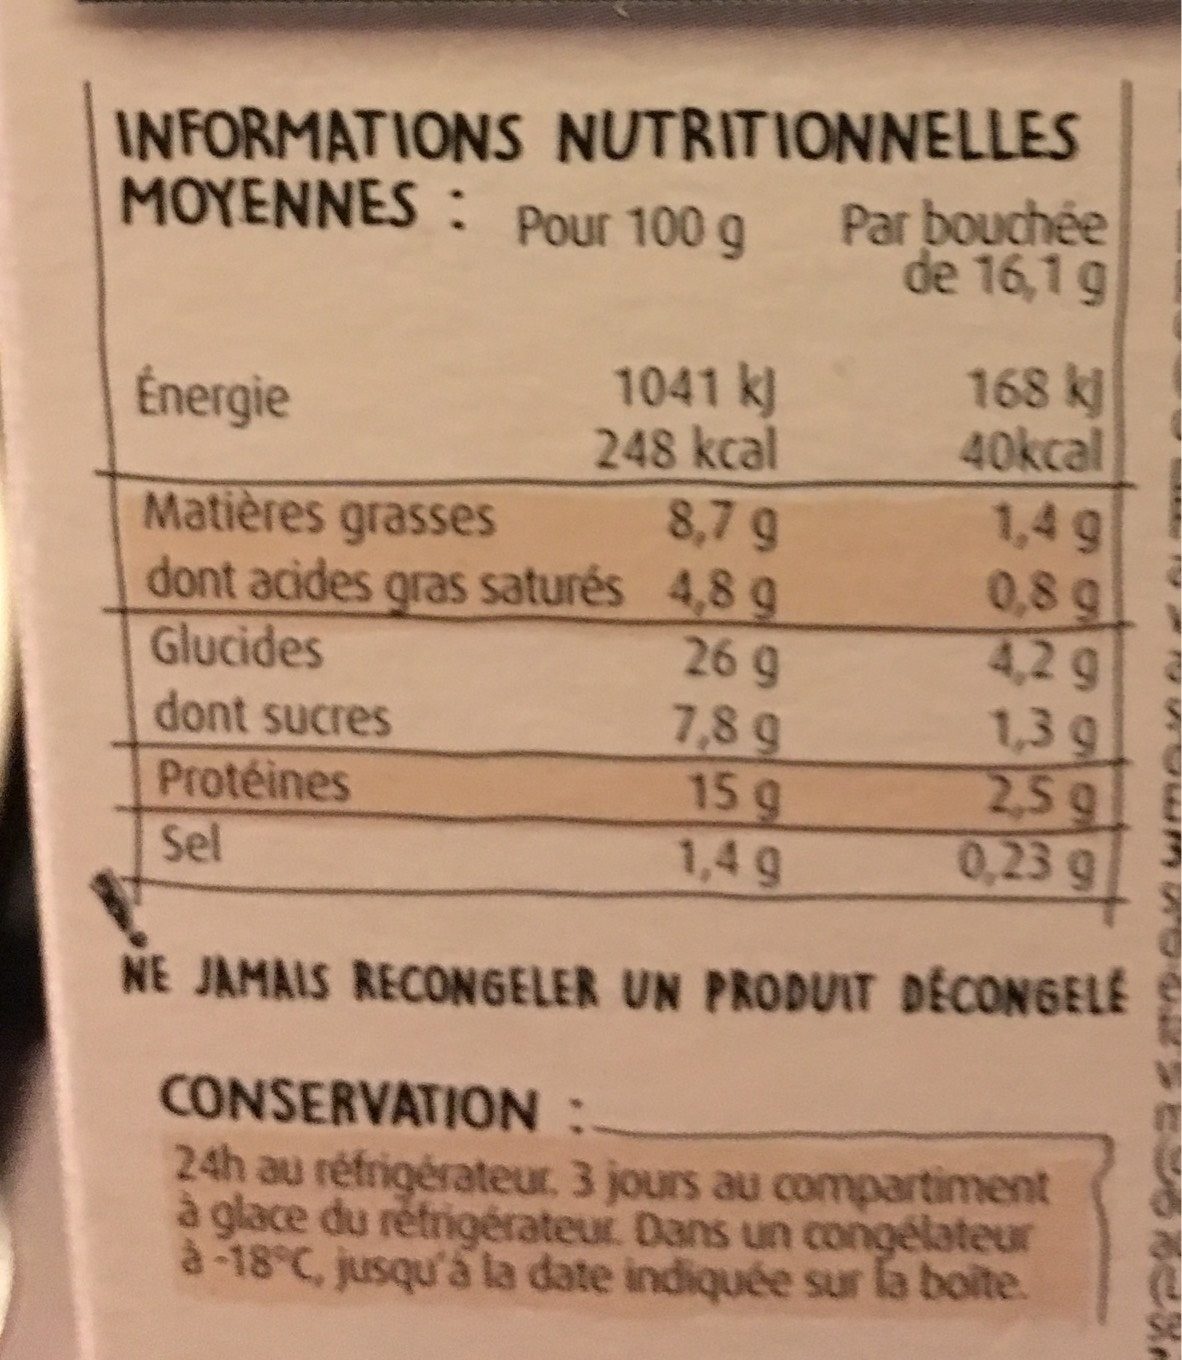 Mes mini cheeseburgers preferes - Nutrition facts - fr